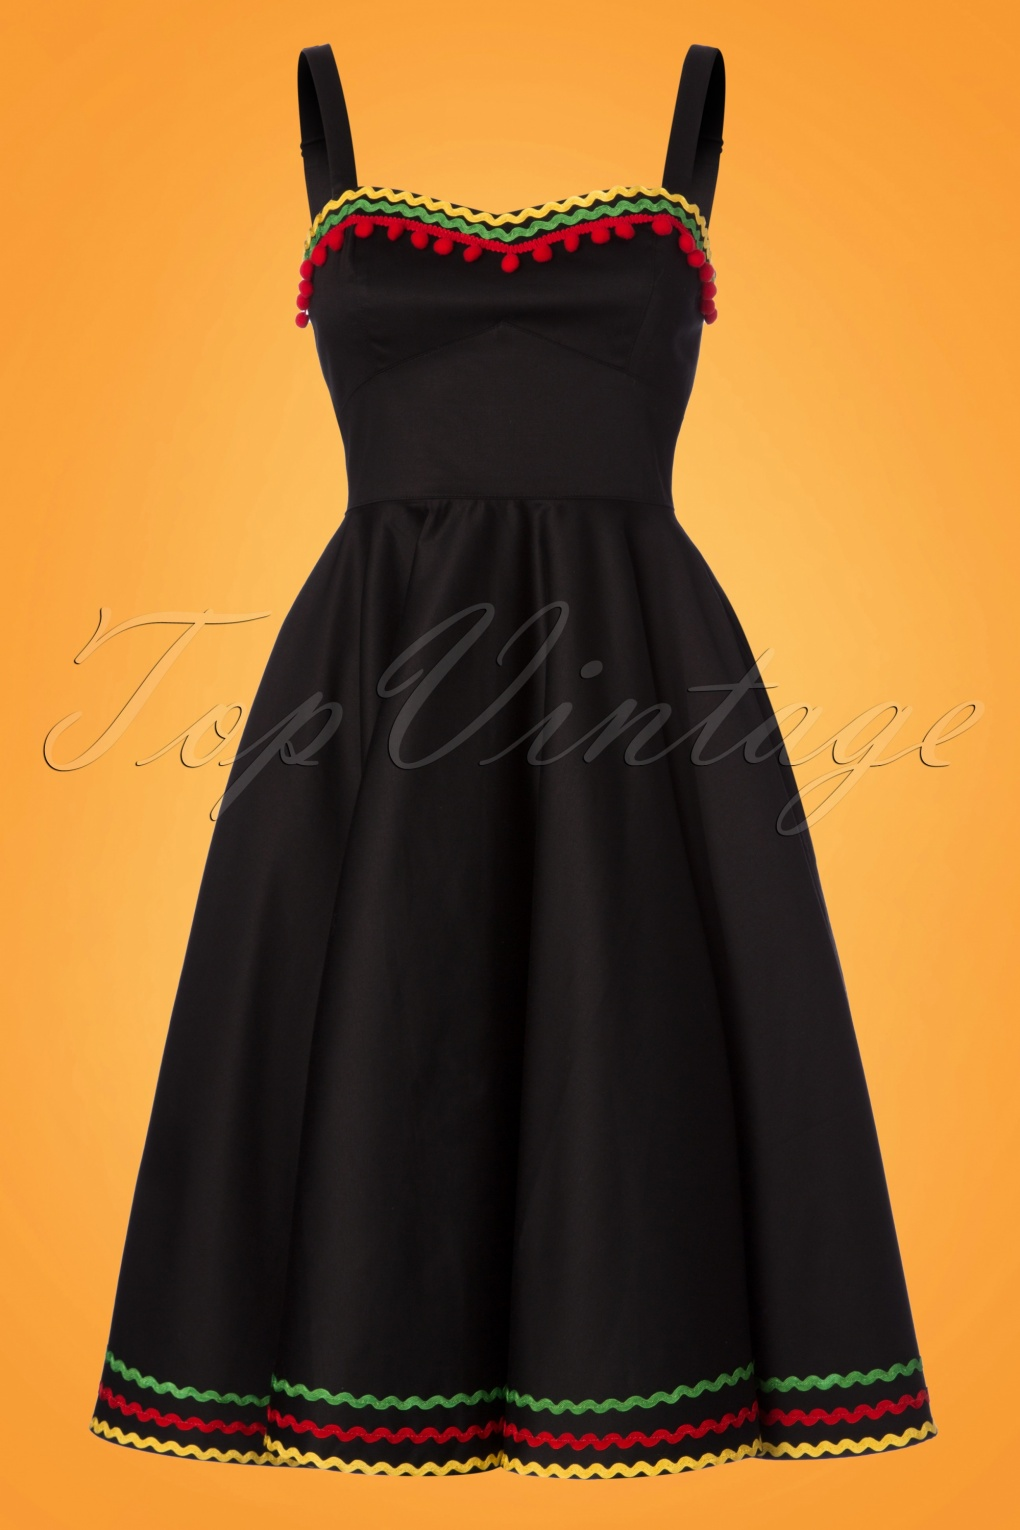 1950s Inspired Fashion: Recreate the Look 50s Marianne Swing Dress in Black £56.70 AT vintagedancer.com